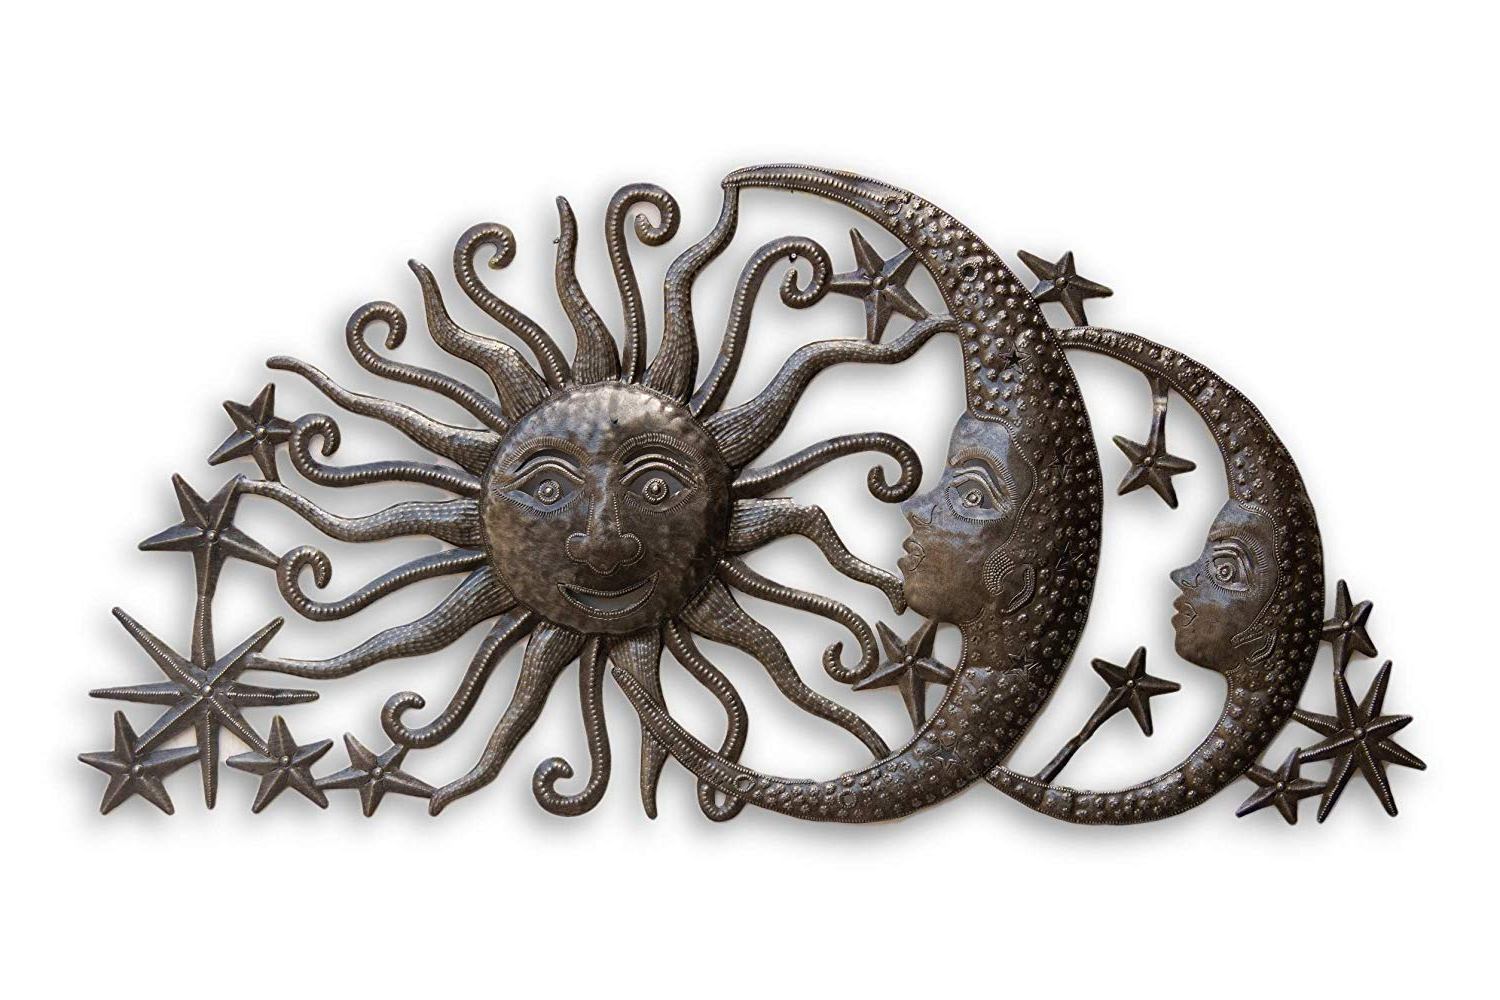 Favorite Amazon: Sun Moons And Stars Celestial Arch, Metal Wall Art With Regard To Recycled Moon And Sun Wall Decor (View 4 of 20)